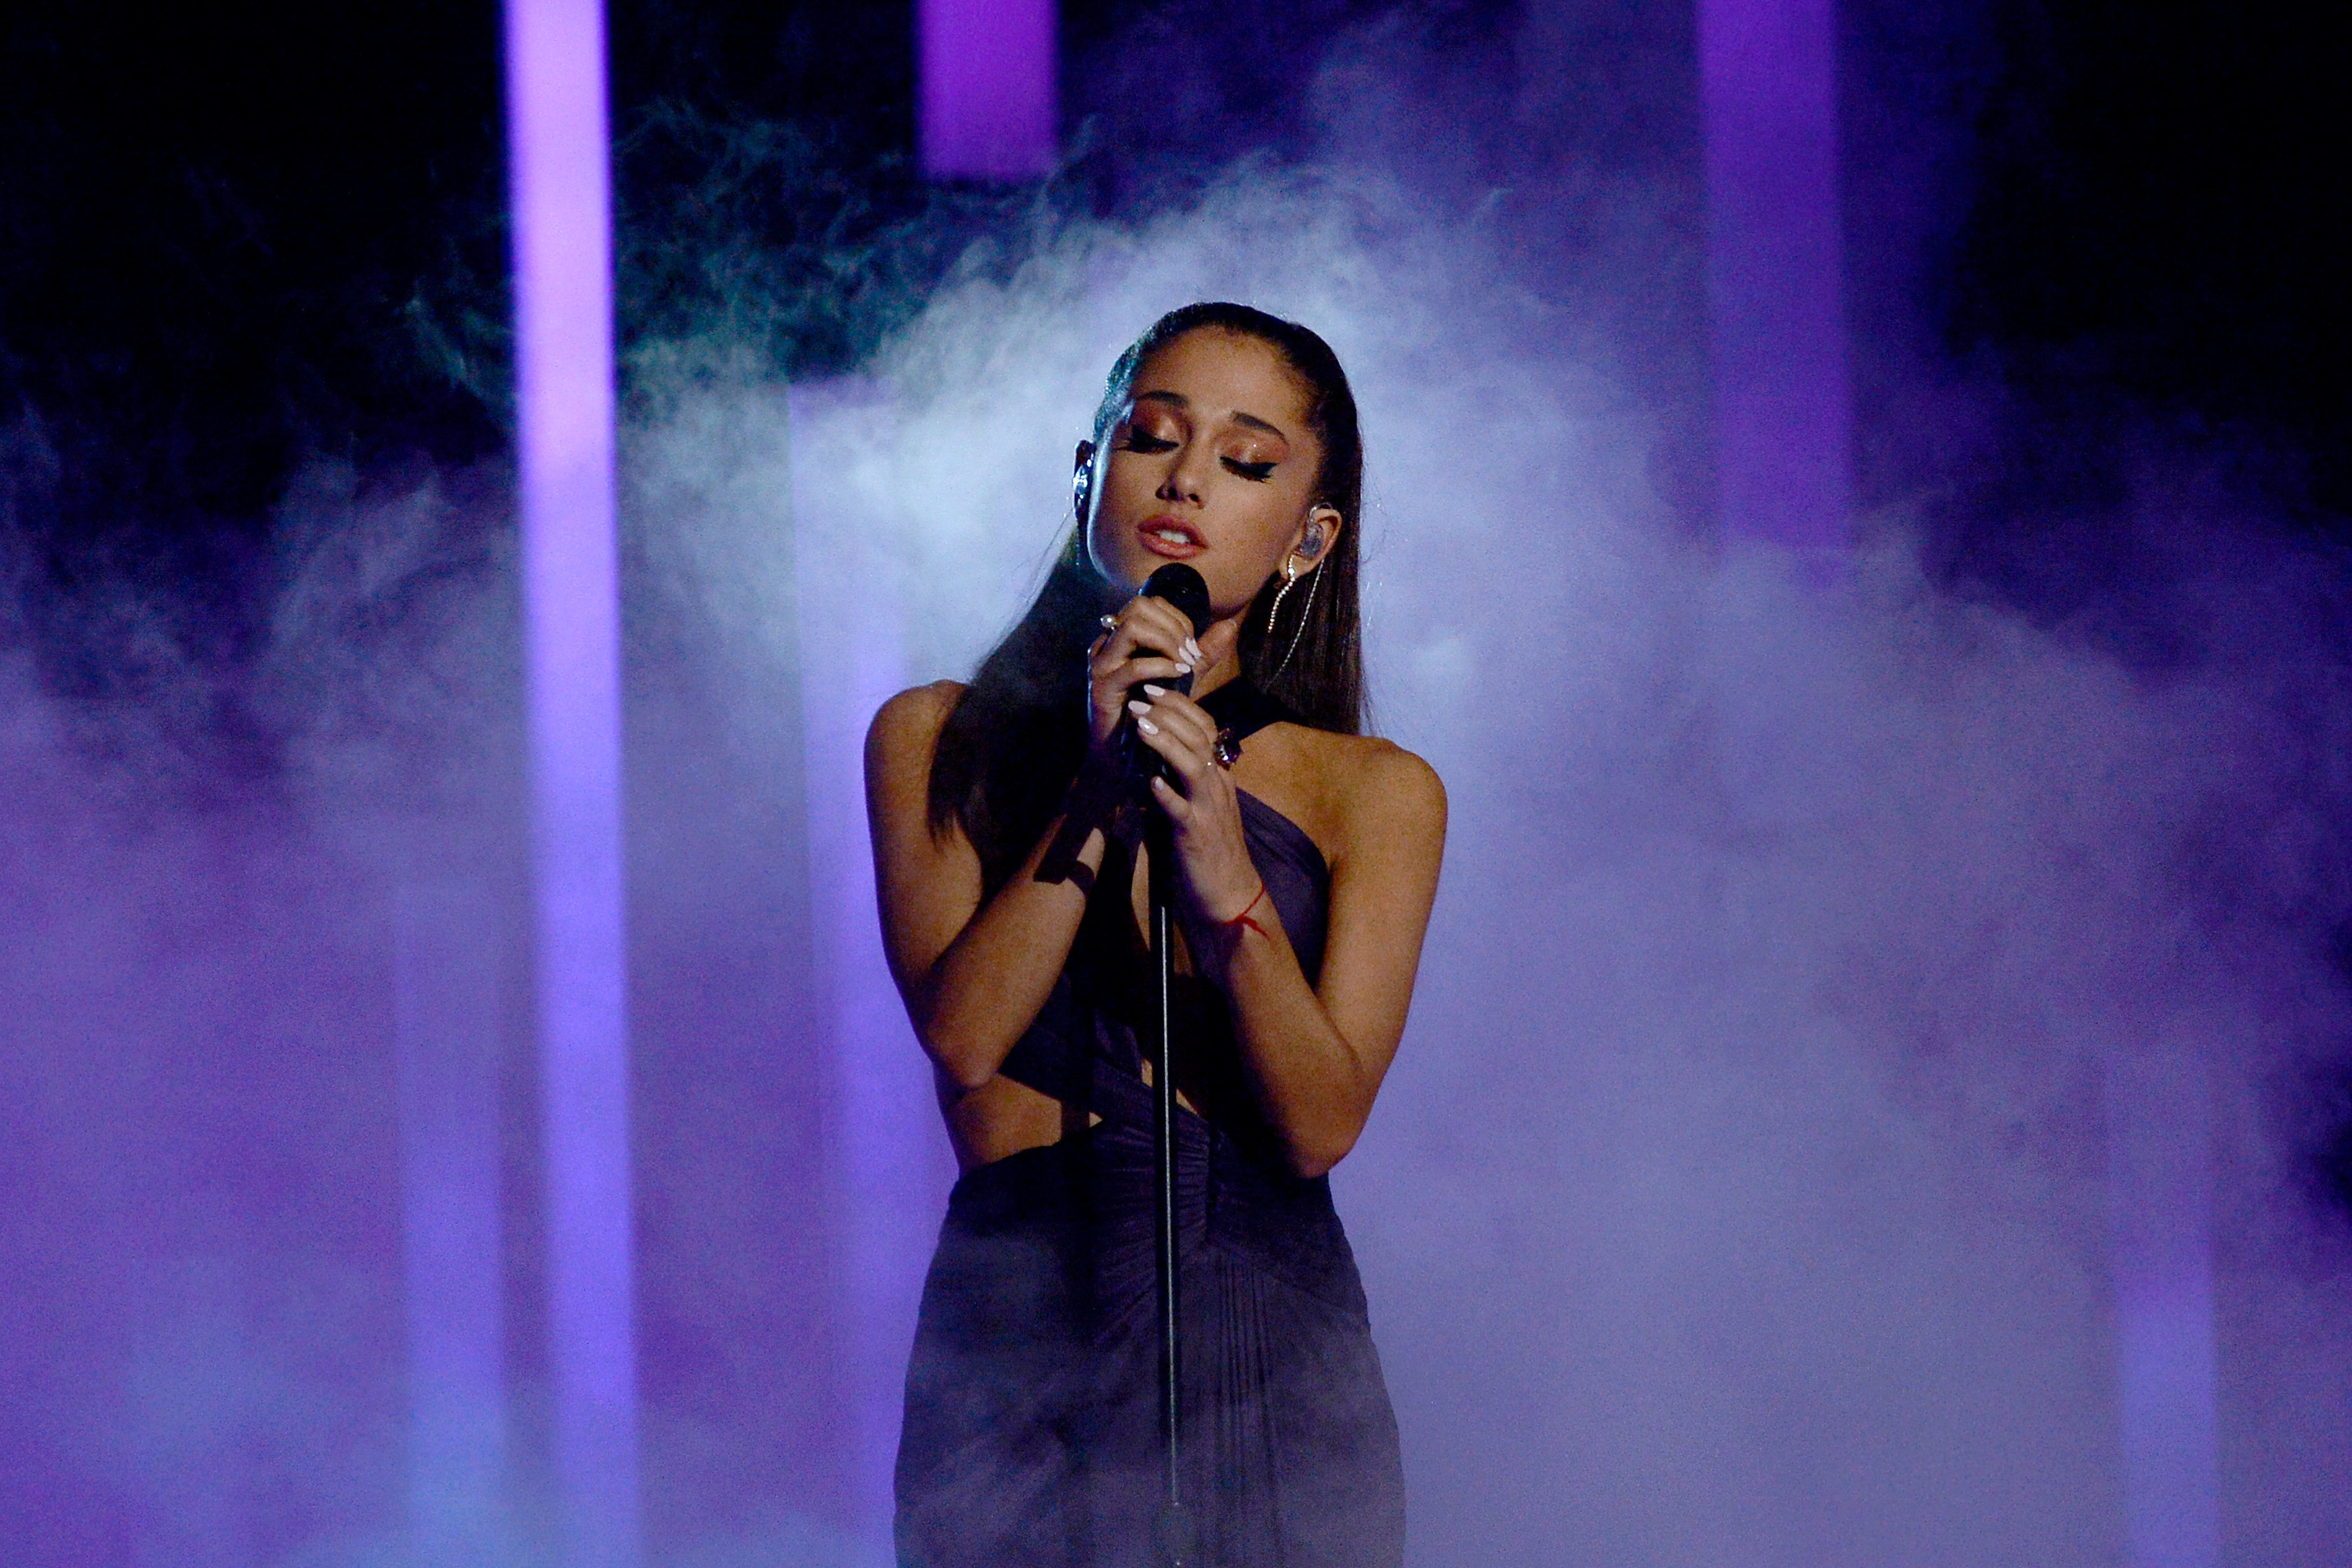 8 Ariana Grande Songs For Karaoke Night When You're Feeling